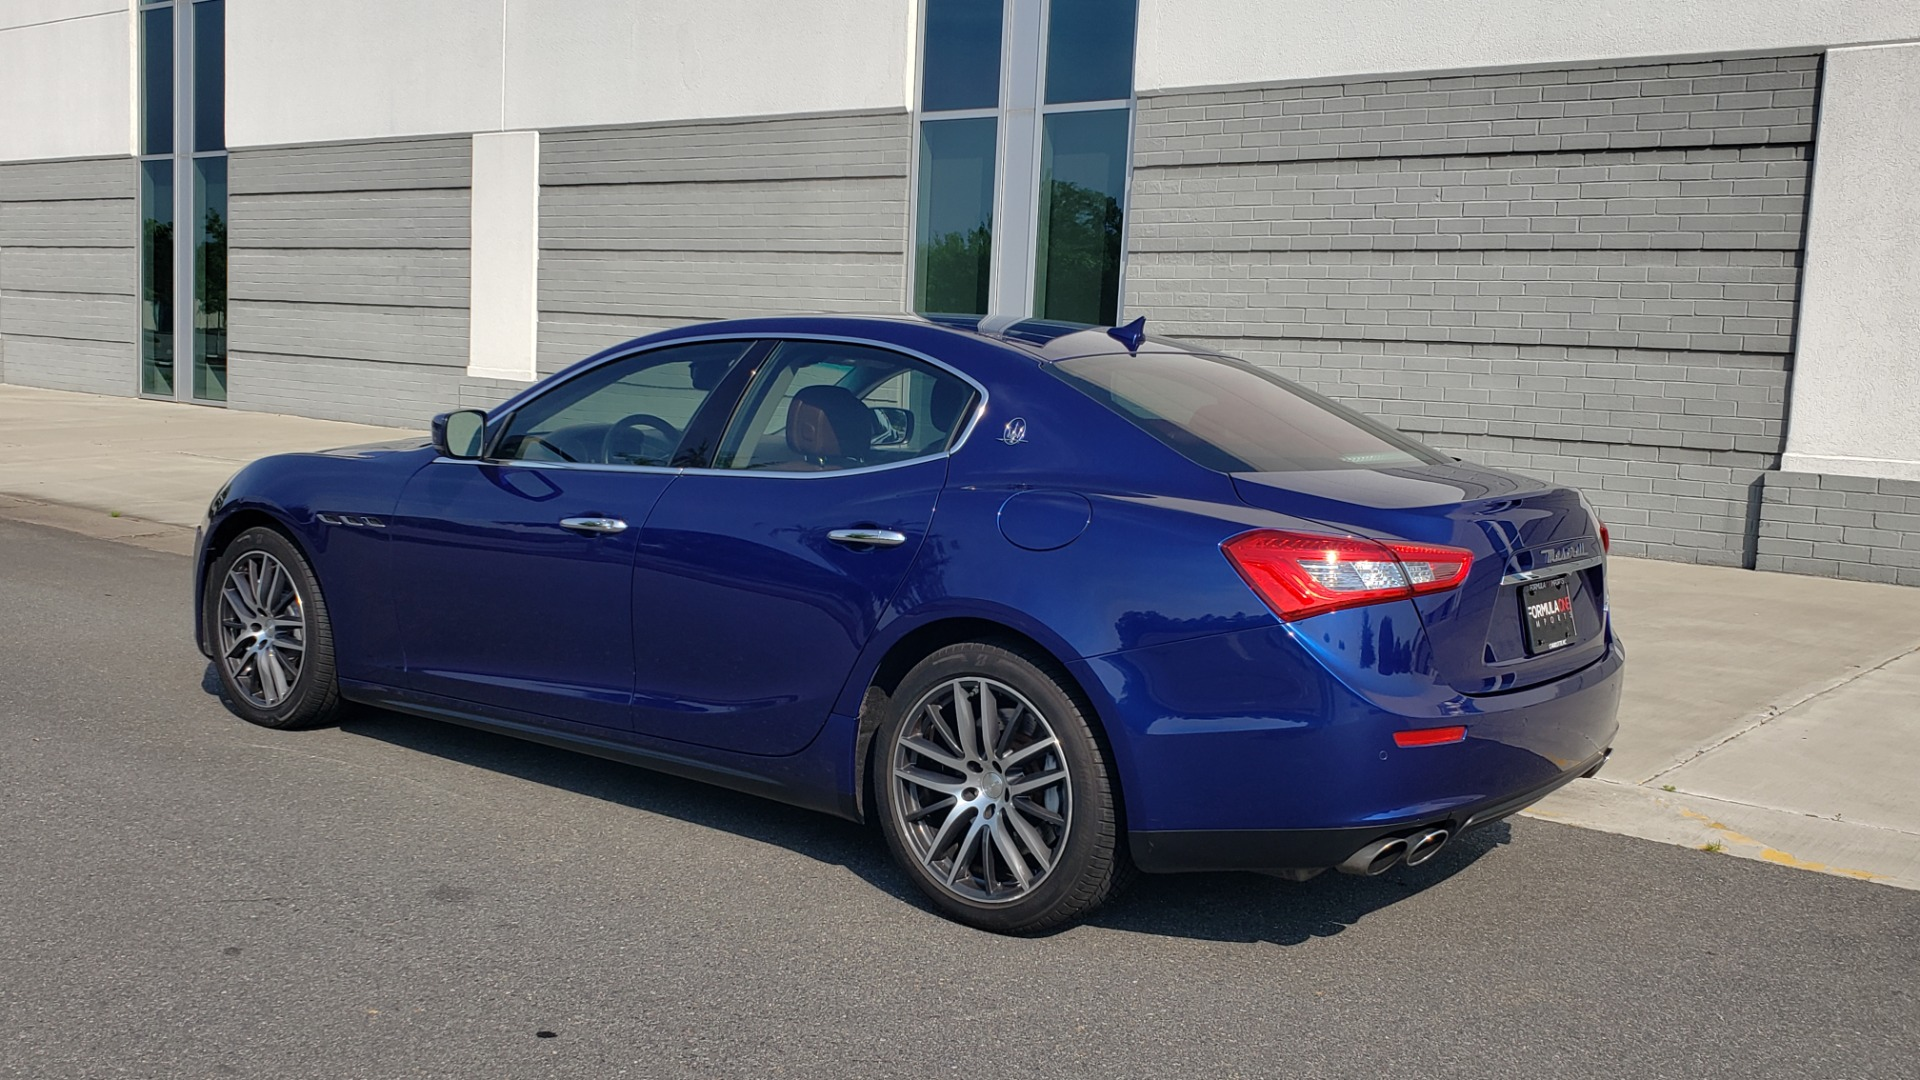 Used 2015 Maserati GHIBLI SEDAN / 3.0L V6 / 8-SPD AUTO / NAV / HTD STS / SUNROOF / REARVIEW for sale $24,495 at Formula Imports in Charlotte NC 28227 6